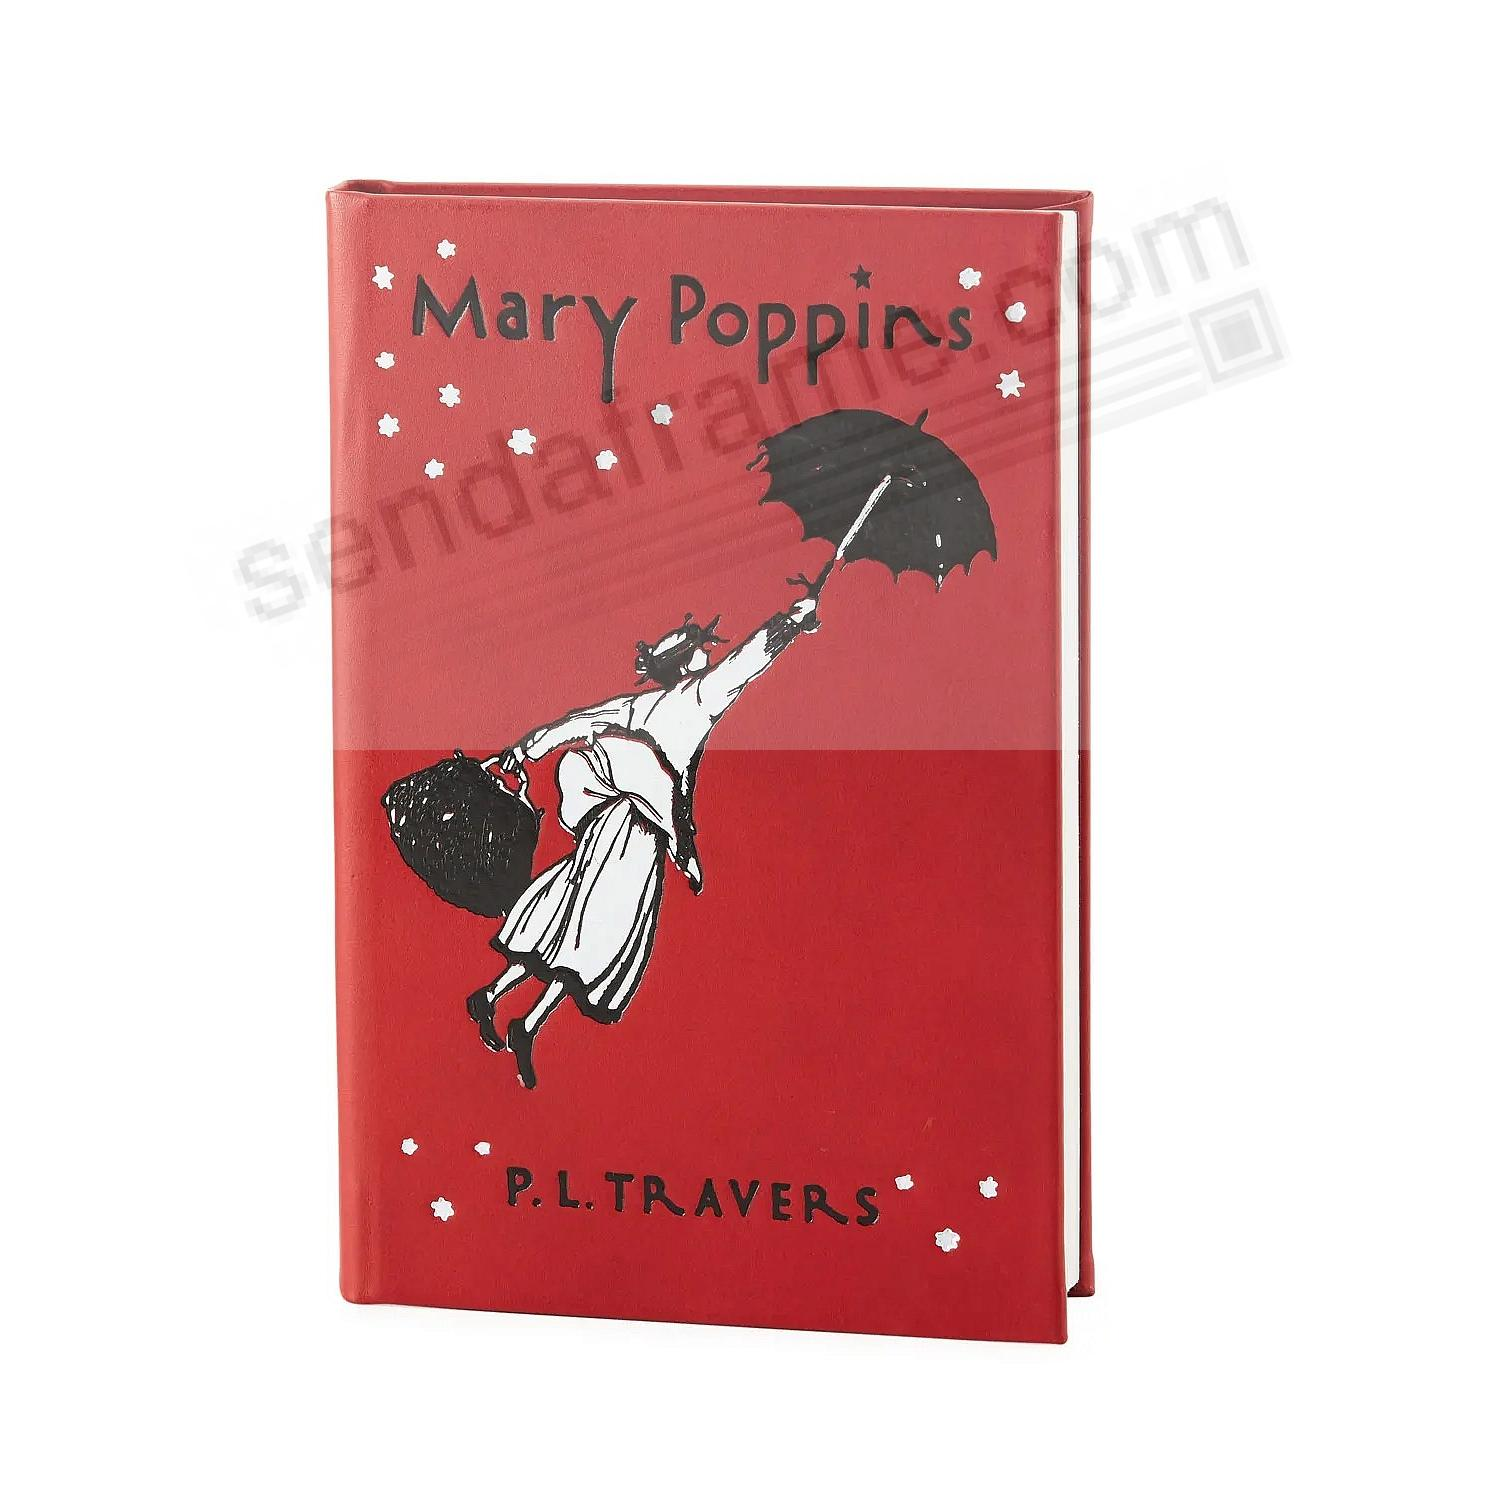 MARY POPPINS by P.L. Travers In Hand-Tooled Luxe Leather